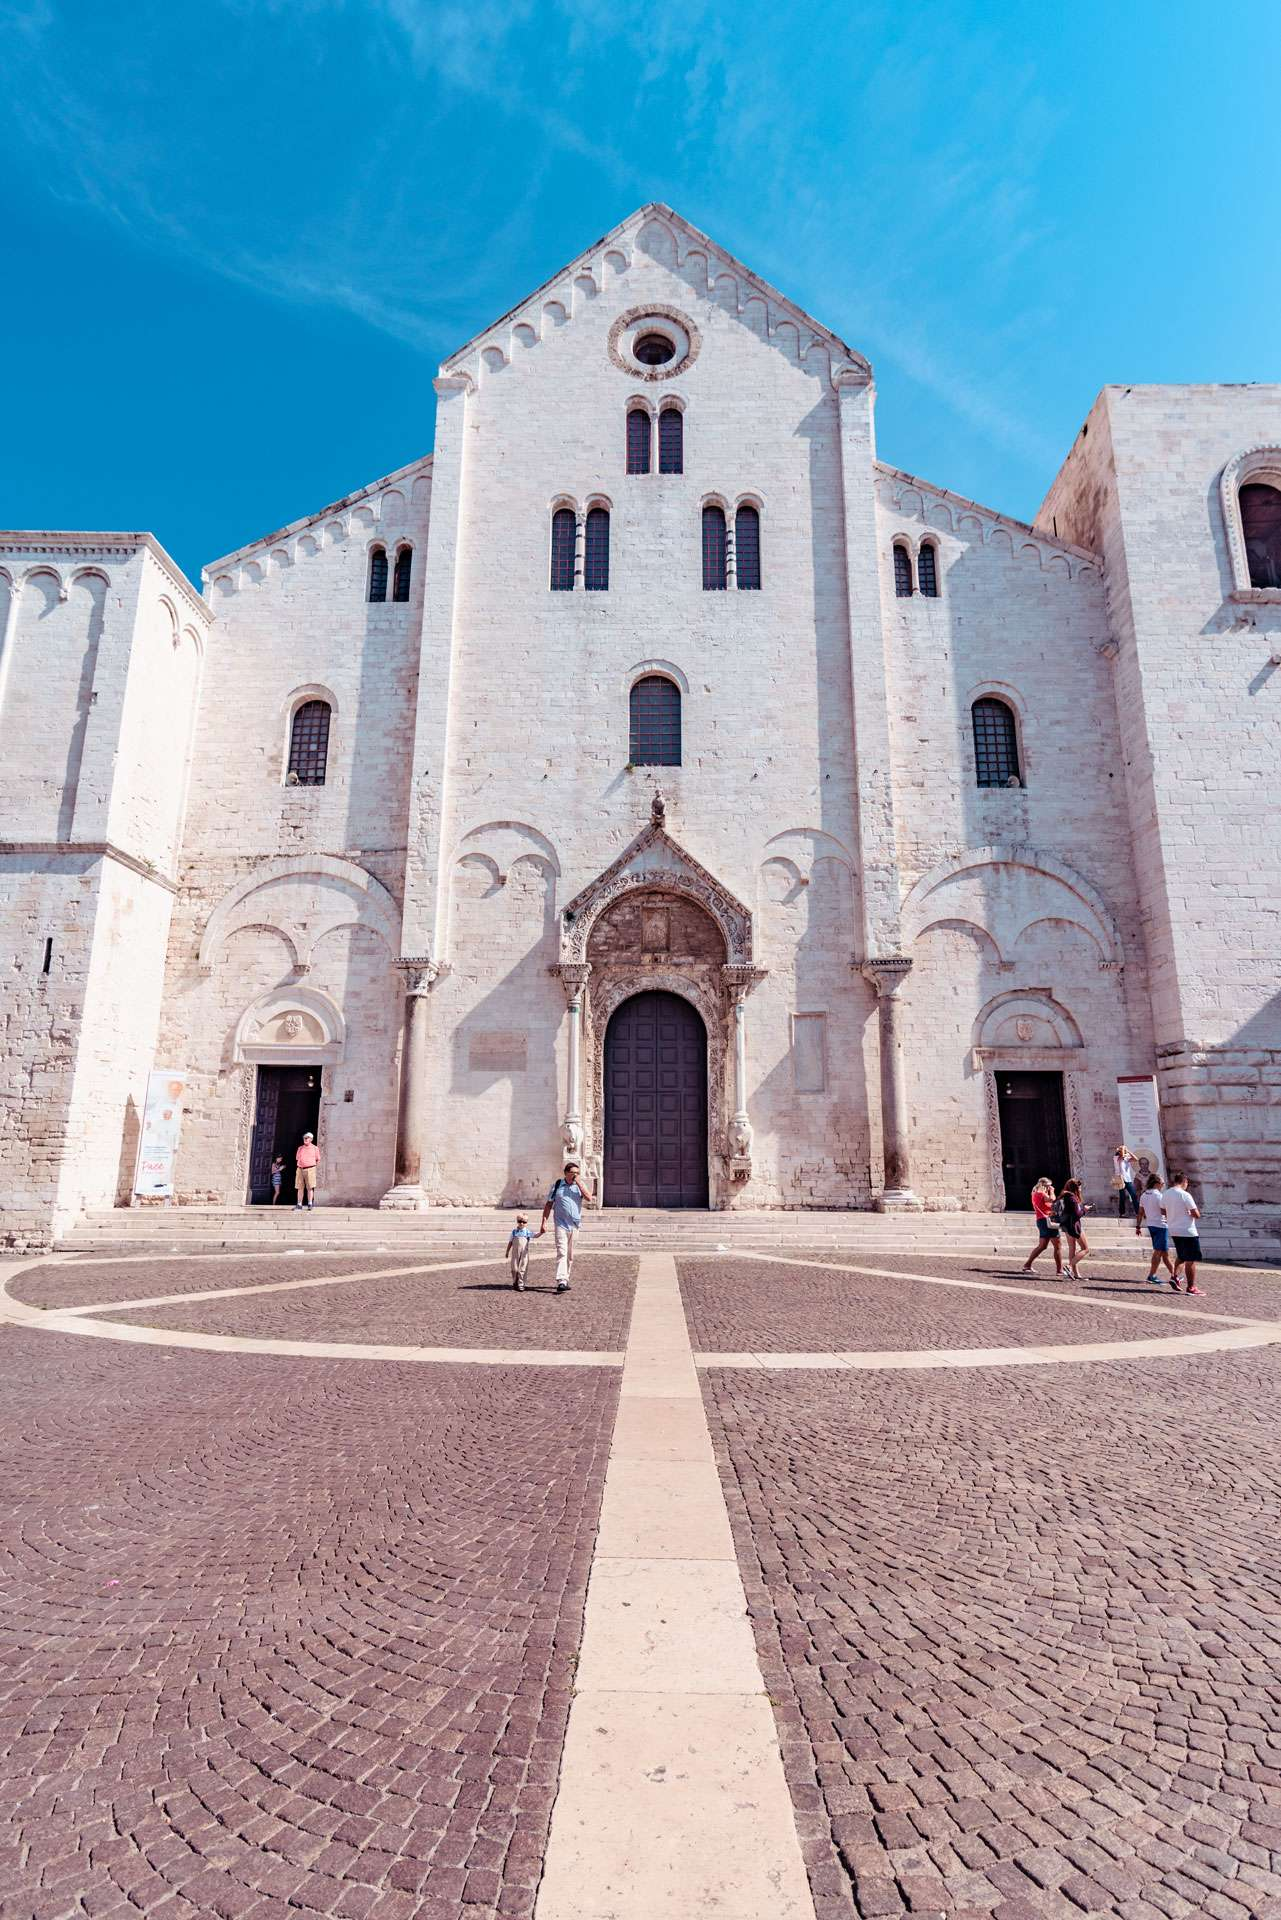 The facade of the Basilica of Saint Nicholas in the old town of Bari city.